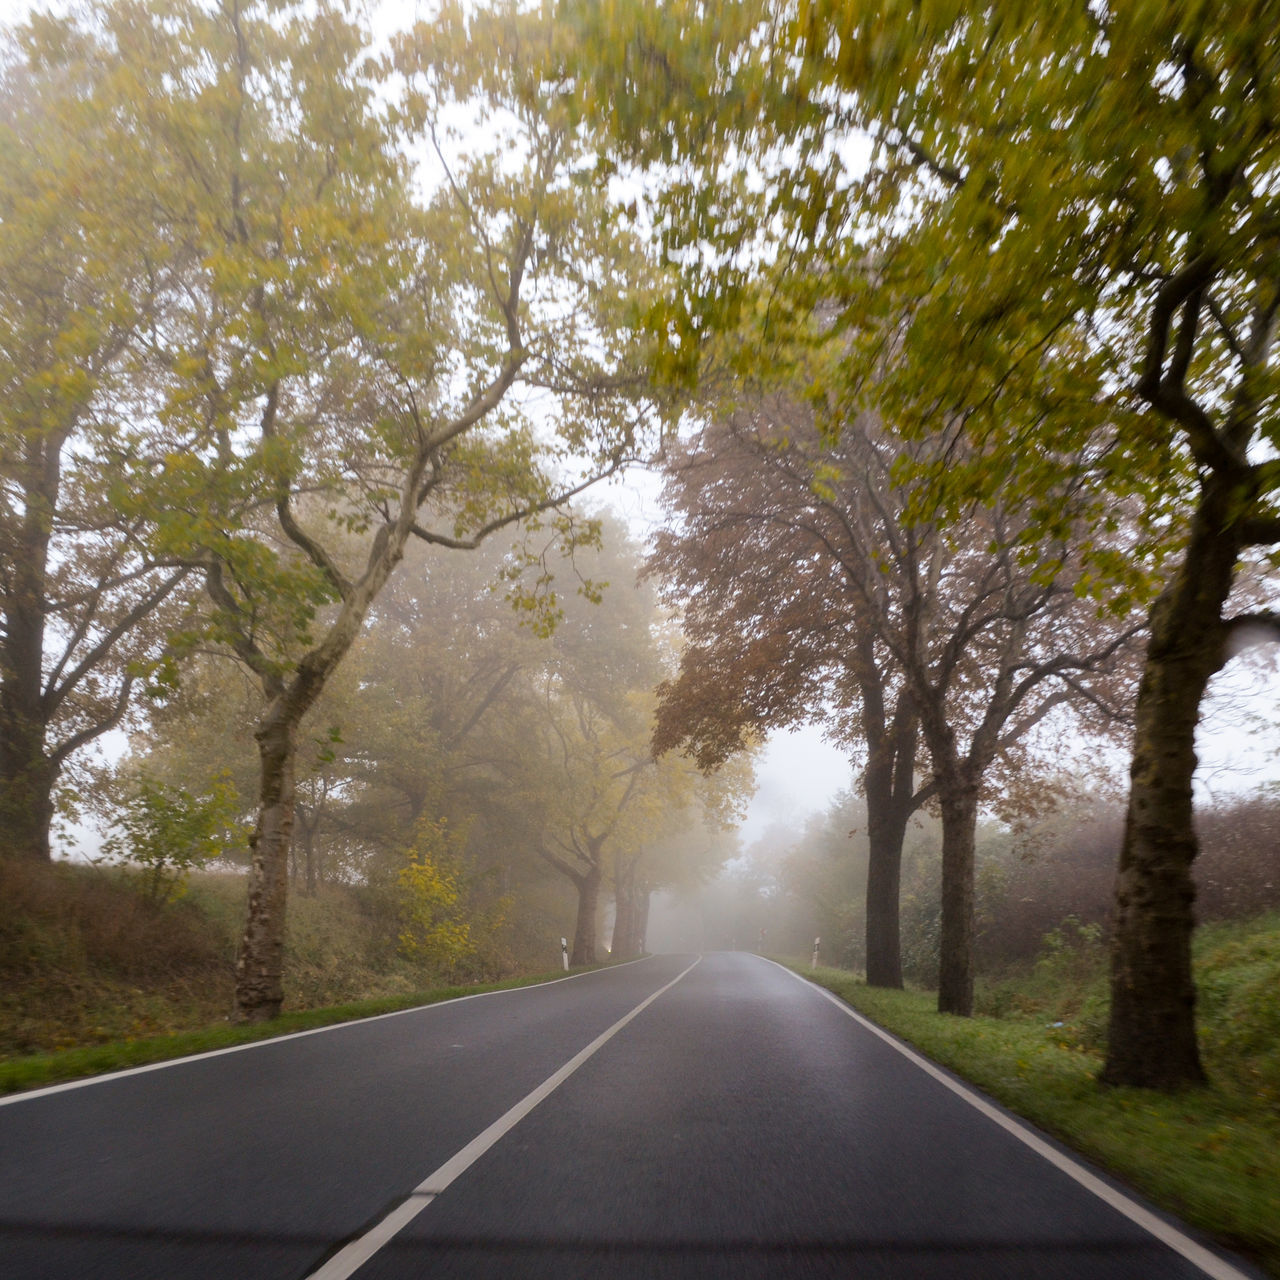 the way forward, tree, road, diminishing perspective, transportation, road marking, nature, white line, day, outdoors, no people, tranquility, dividing line, tranquil scene, scenics, branch, beauty in nature, sky